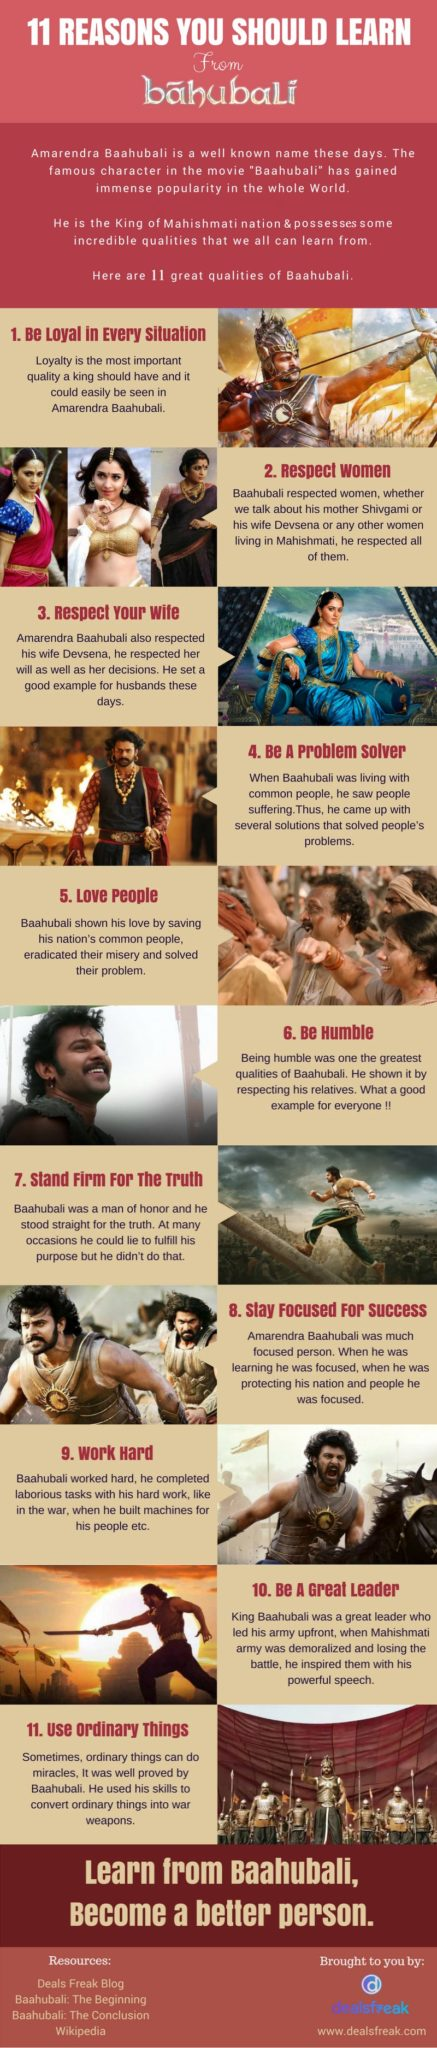 11 Reasons You Should Learn From Baahubali